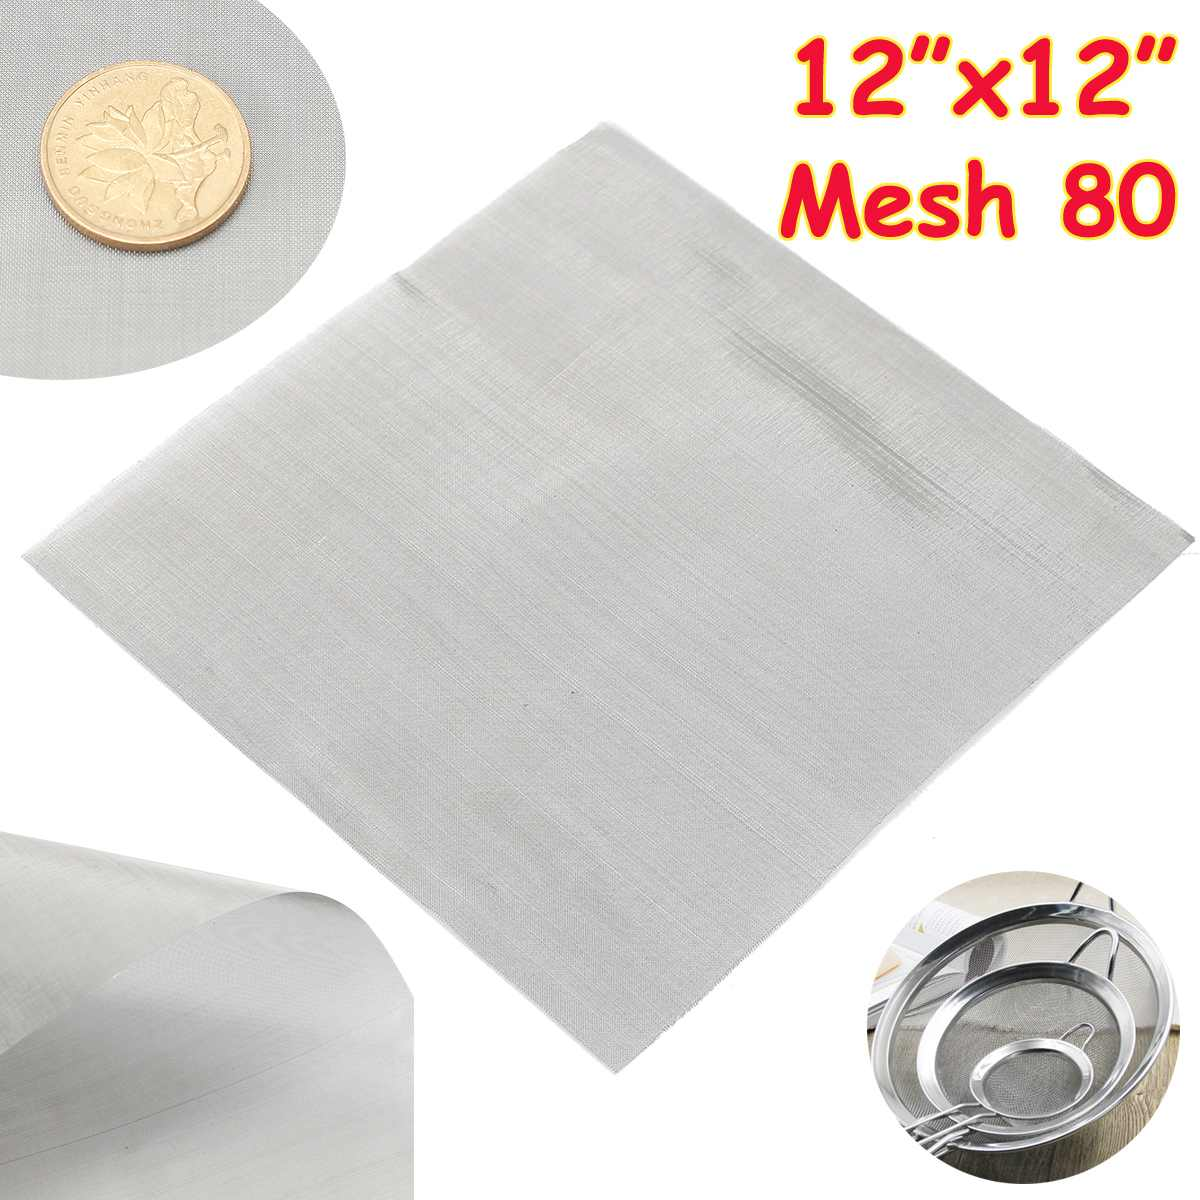 1pc 80 Mesh Woven Wire Cloth Screen Filtration 304 Stainless Steel 30x30cm With High Temperature Resistance